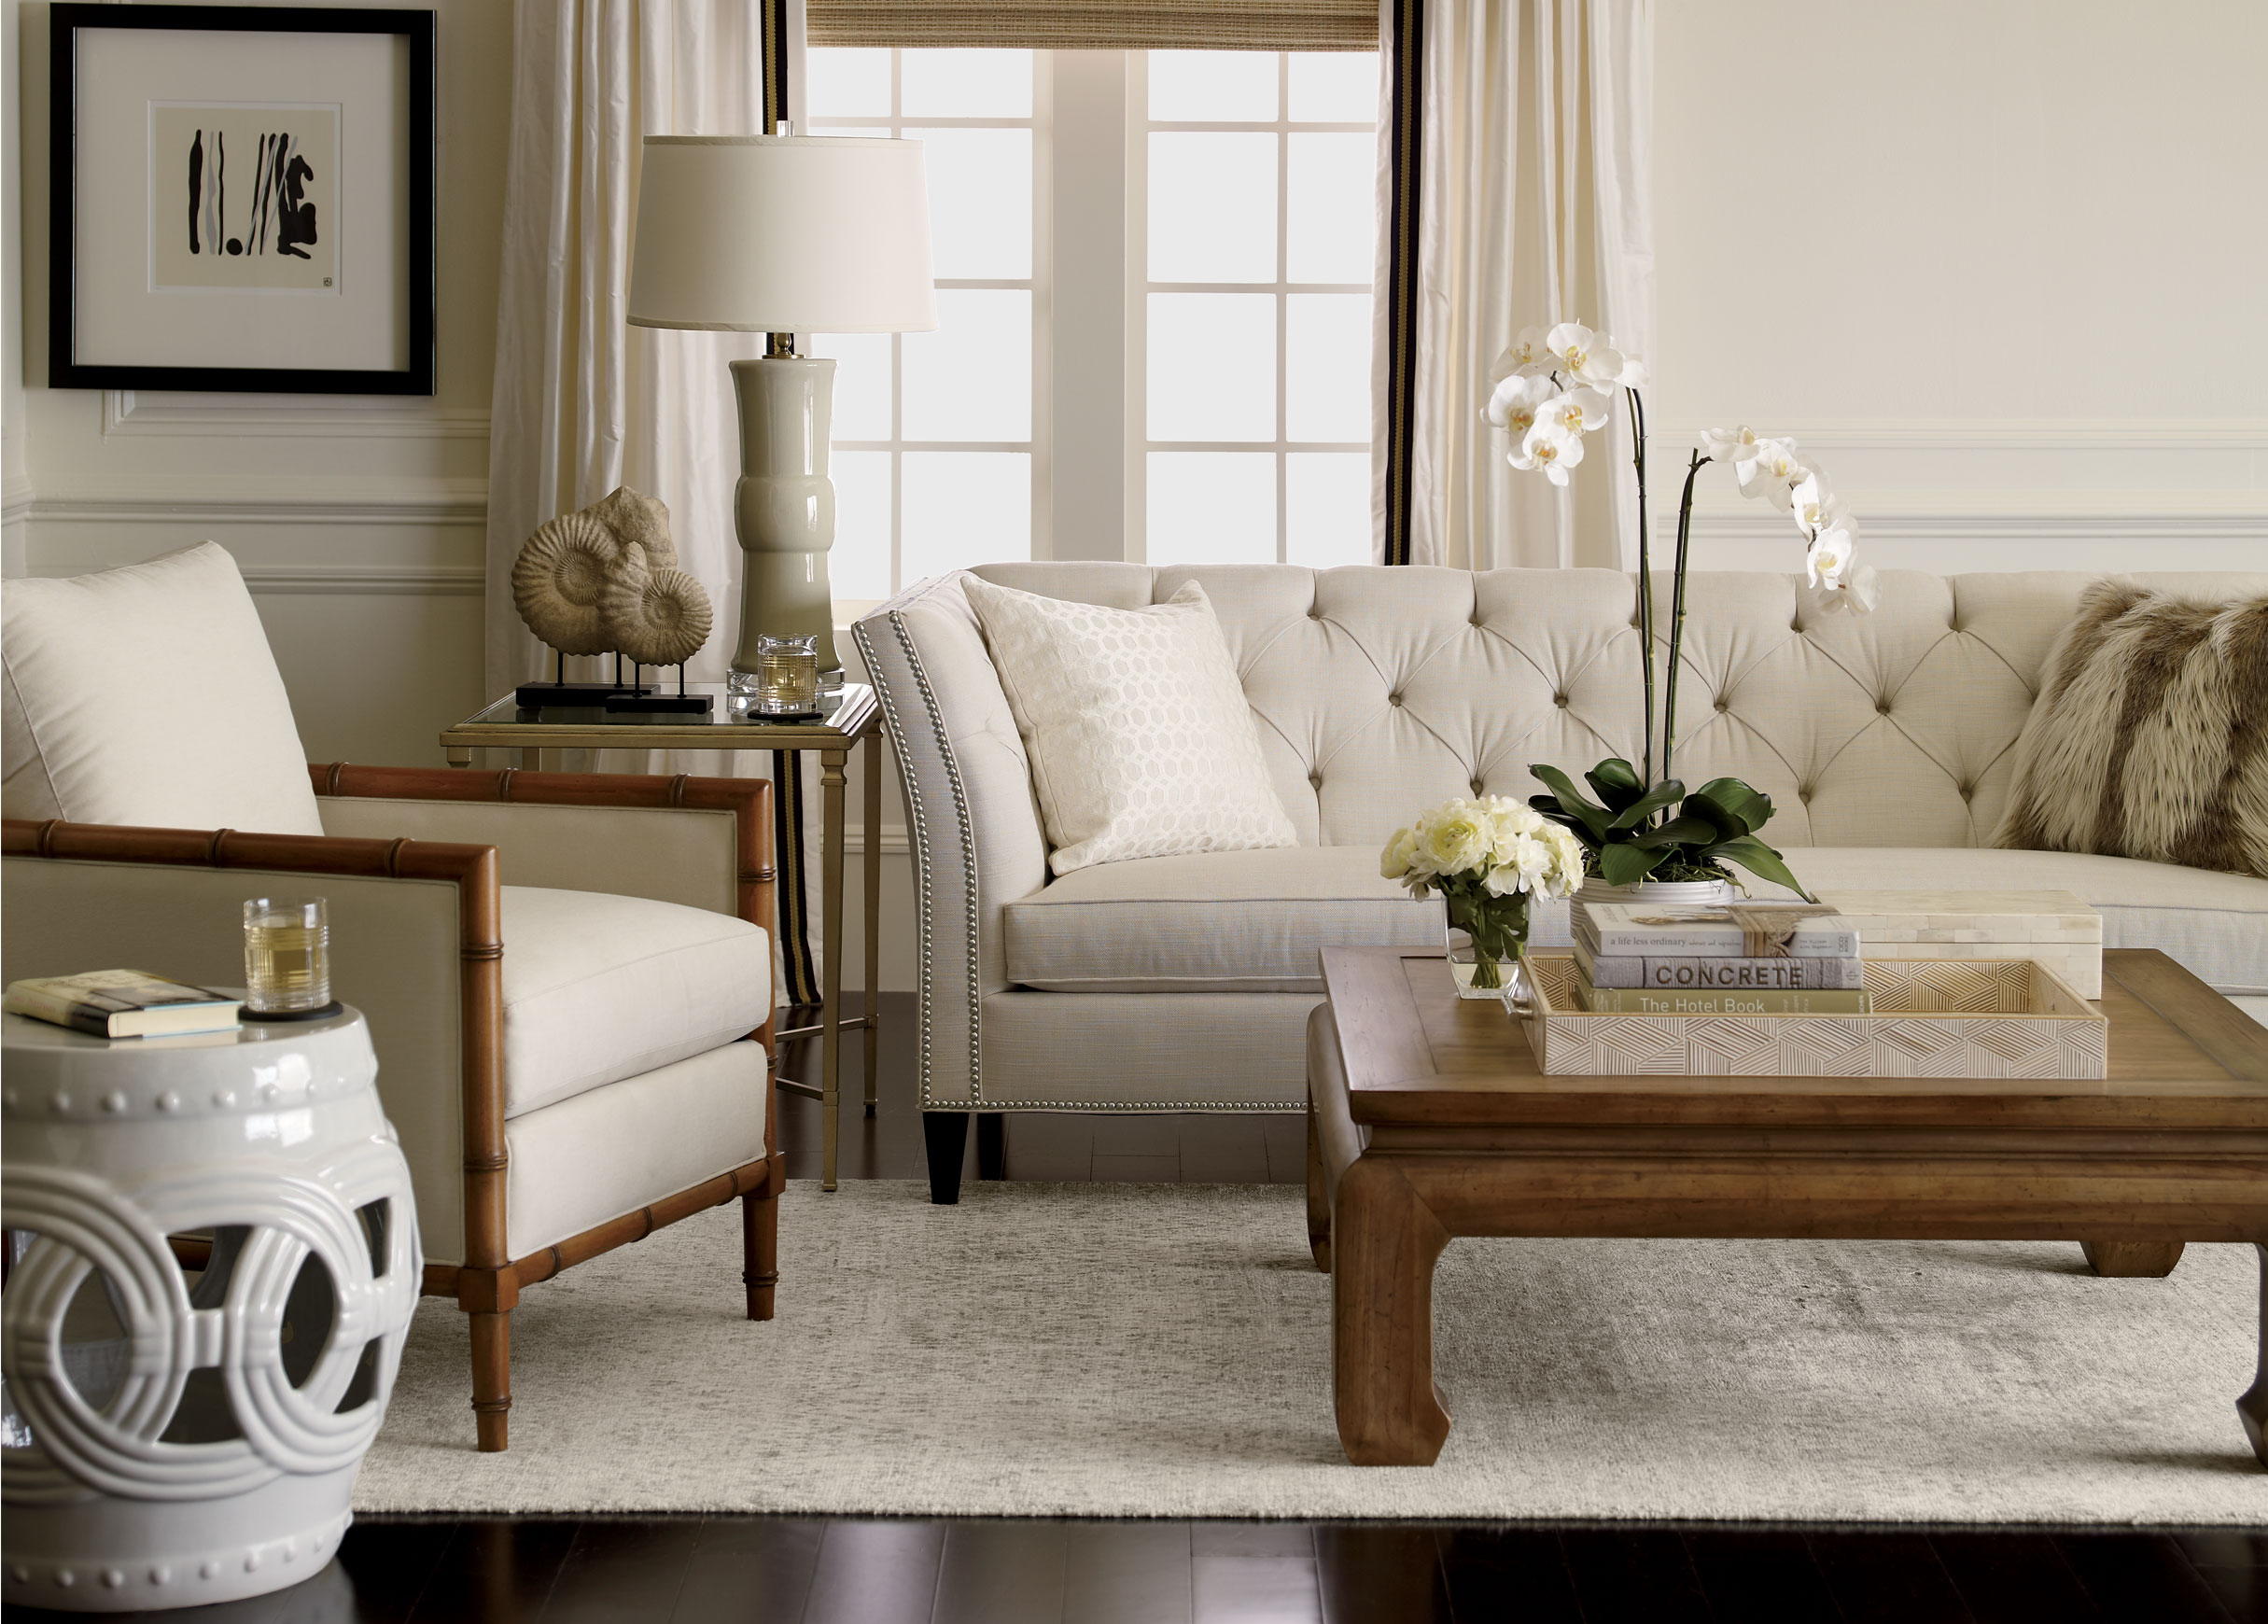 Furniture Ethan Allen Furniture For High Quality Furniture with regard to 12 Clever Ways How to Make Ethan Allen Living Room Sets